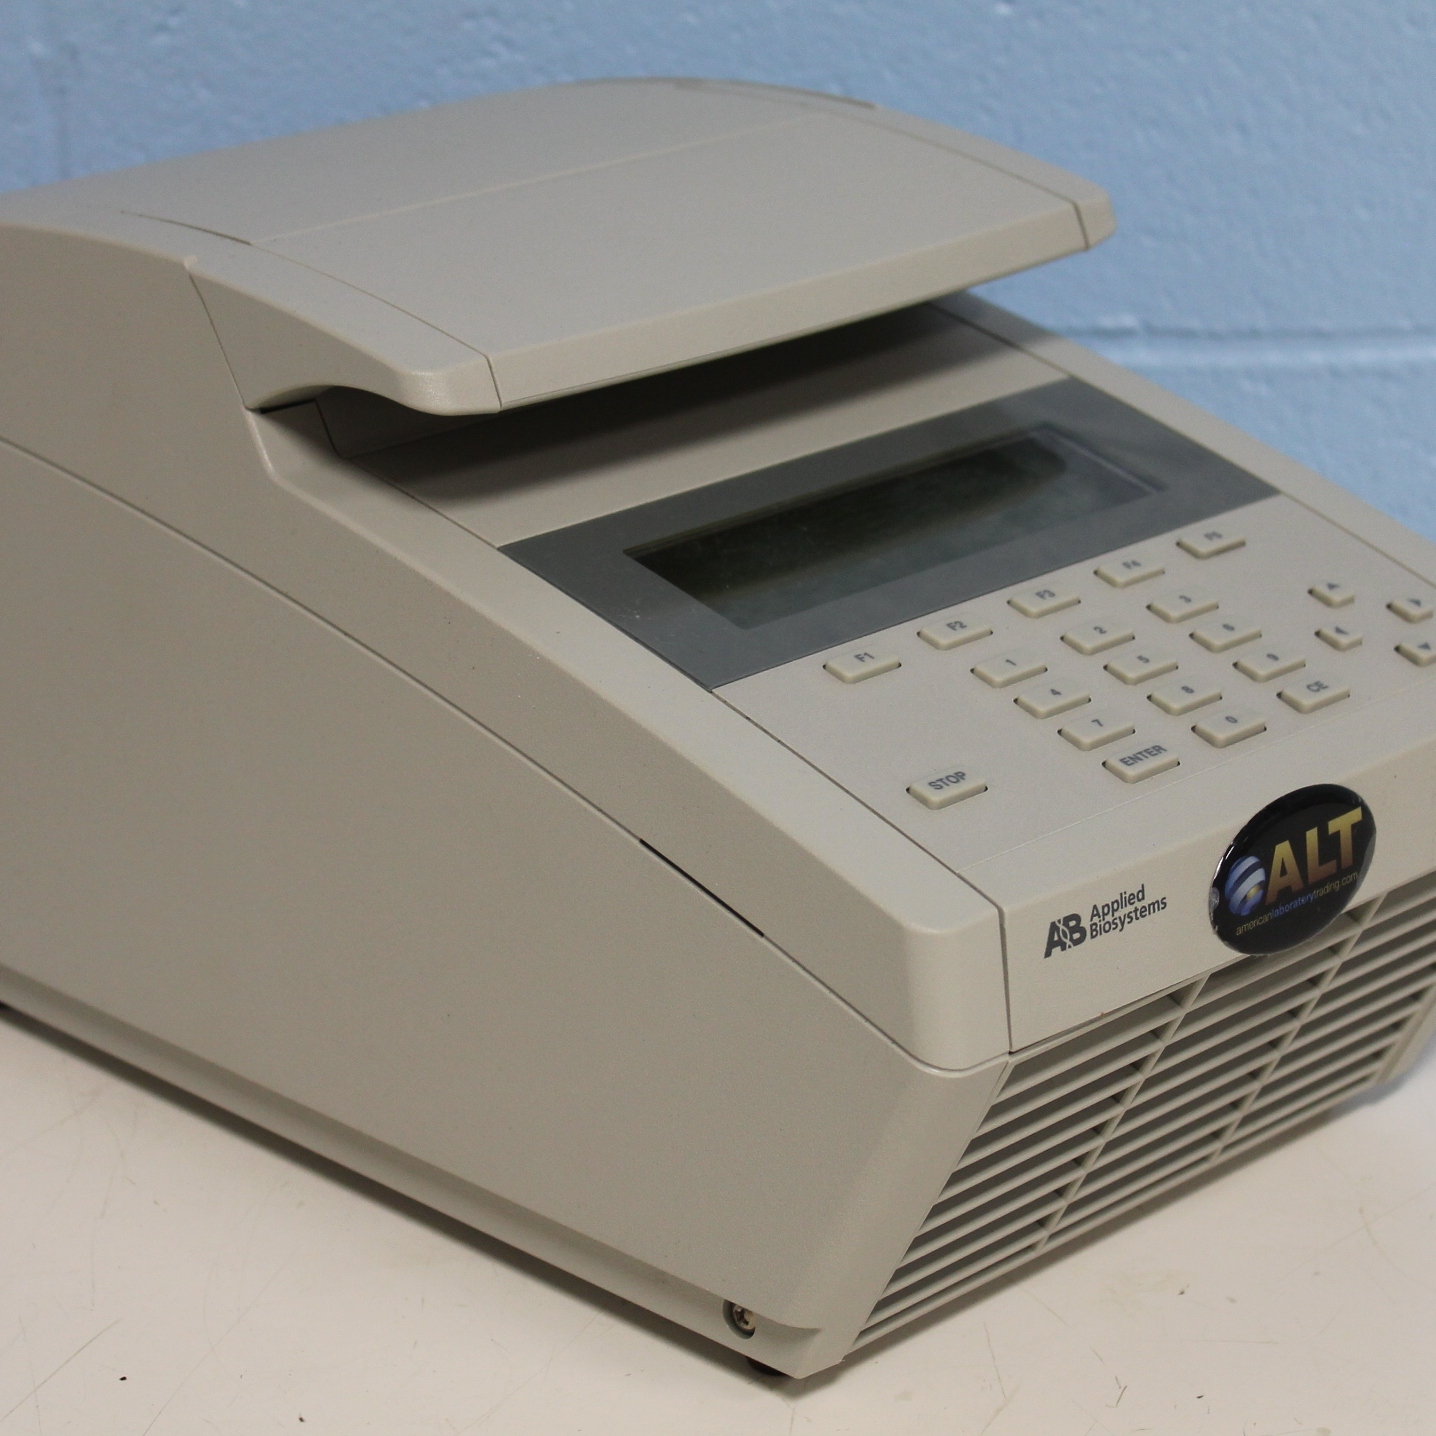 Applied Biosystems PCR System 2700 Image